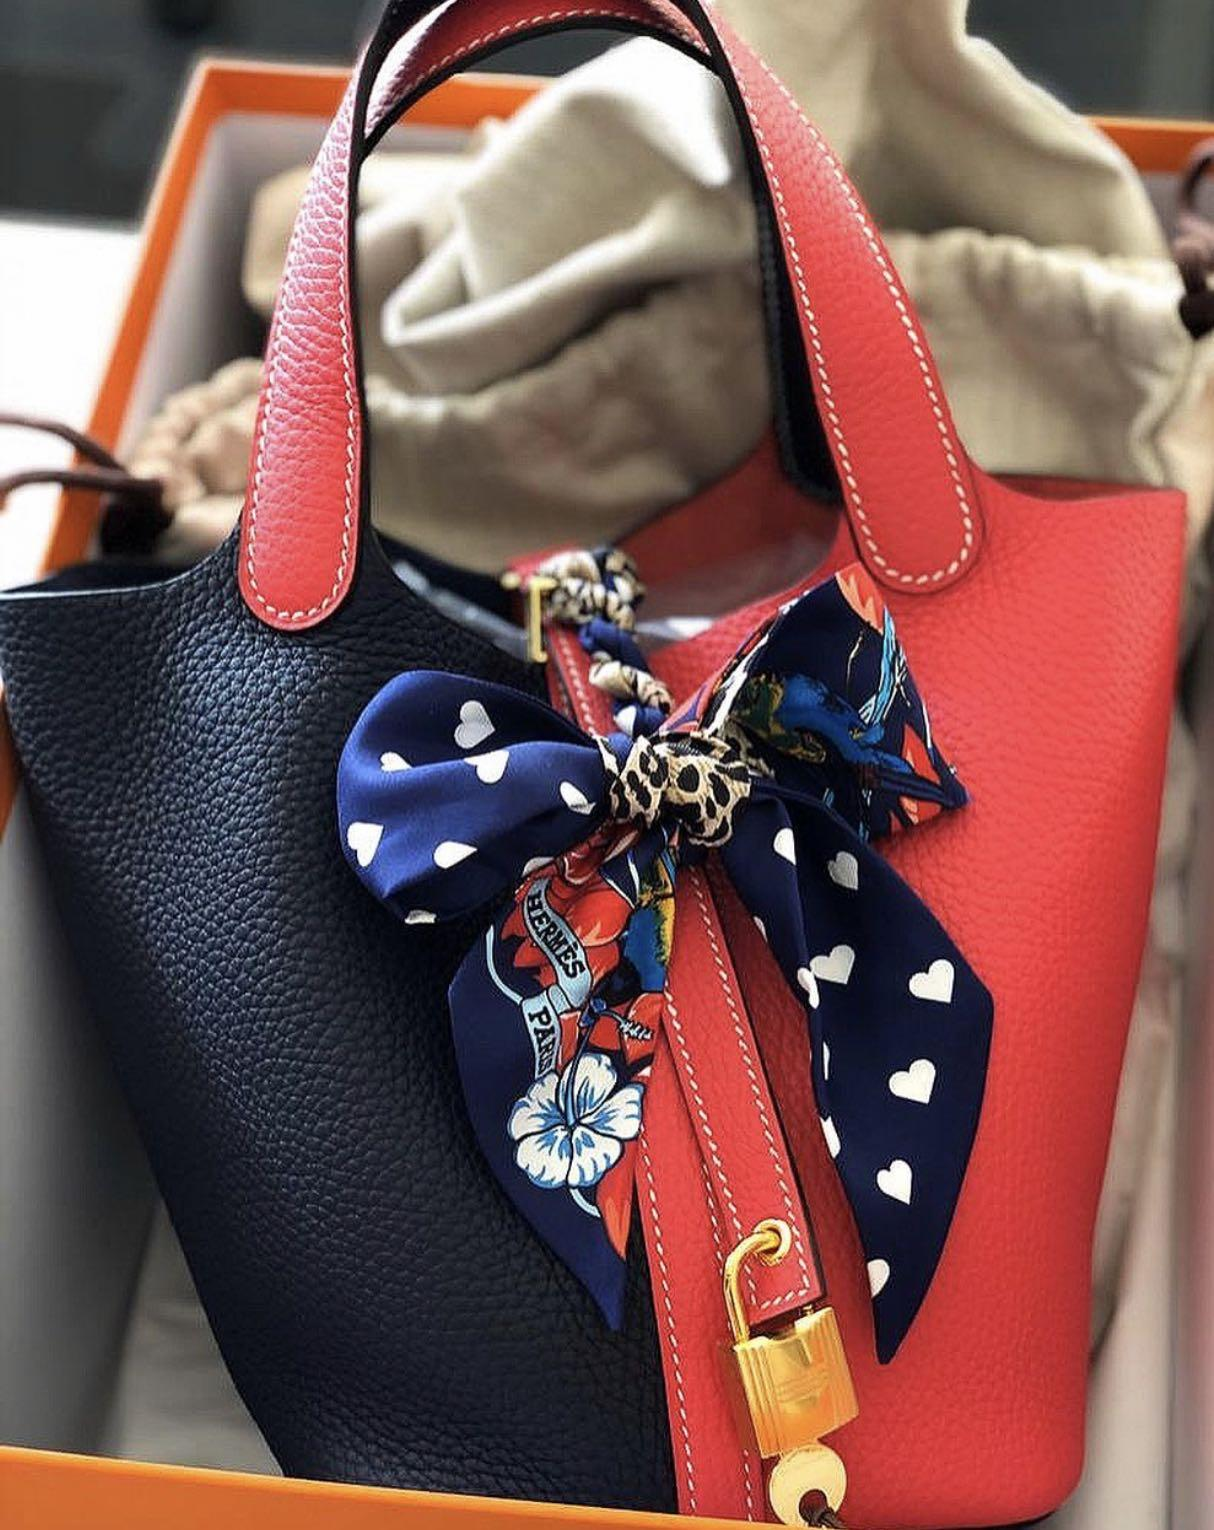 🆕 AUTHENTIC HERMES PICOTIN 18 BLUE NUIT / ROSE EXTREME CLEMENCE IN GHW